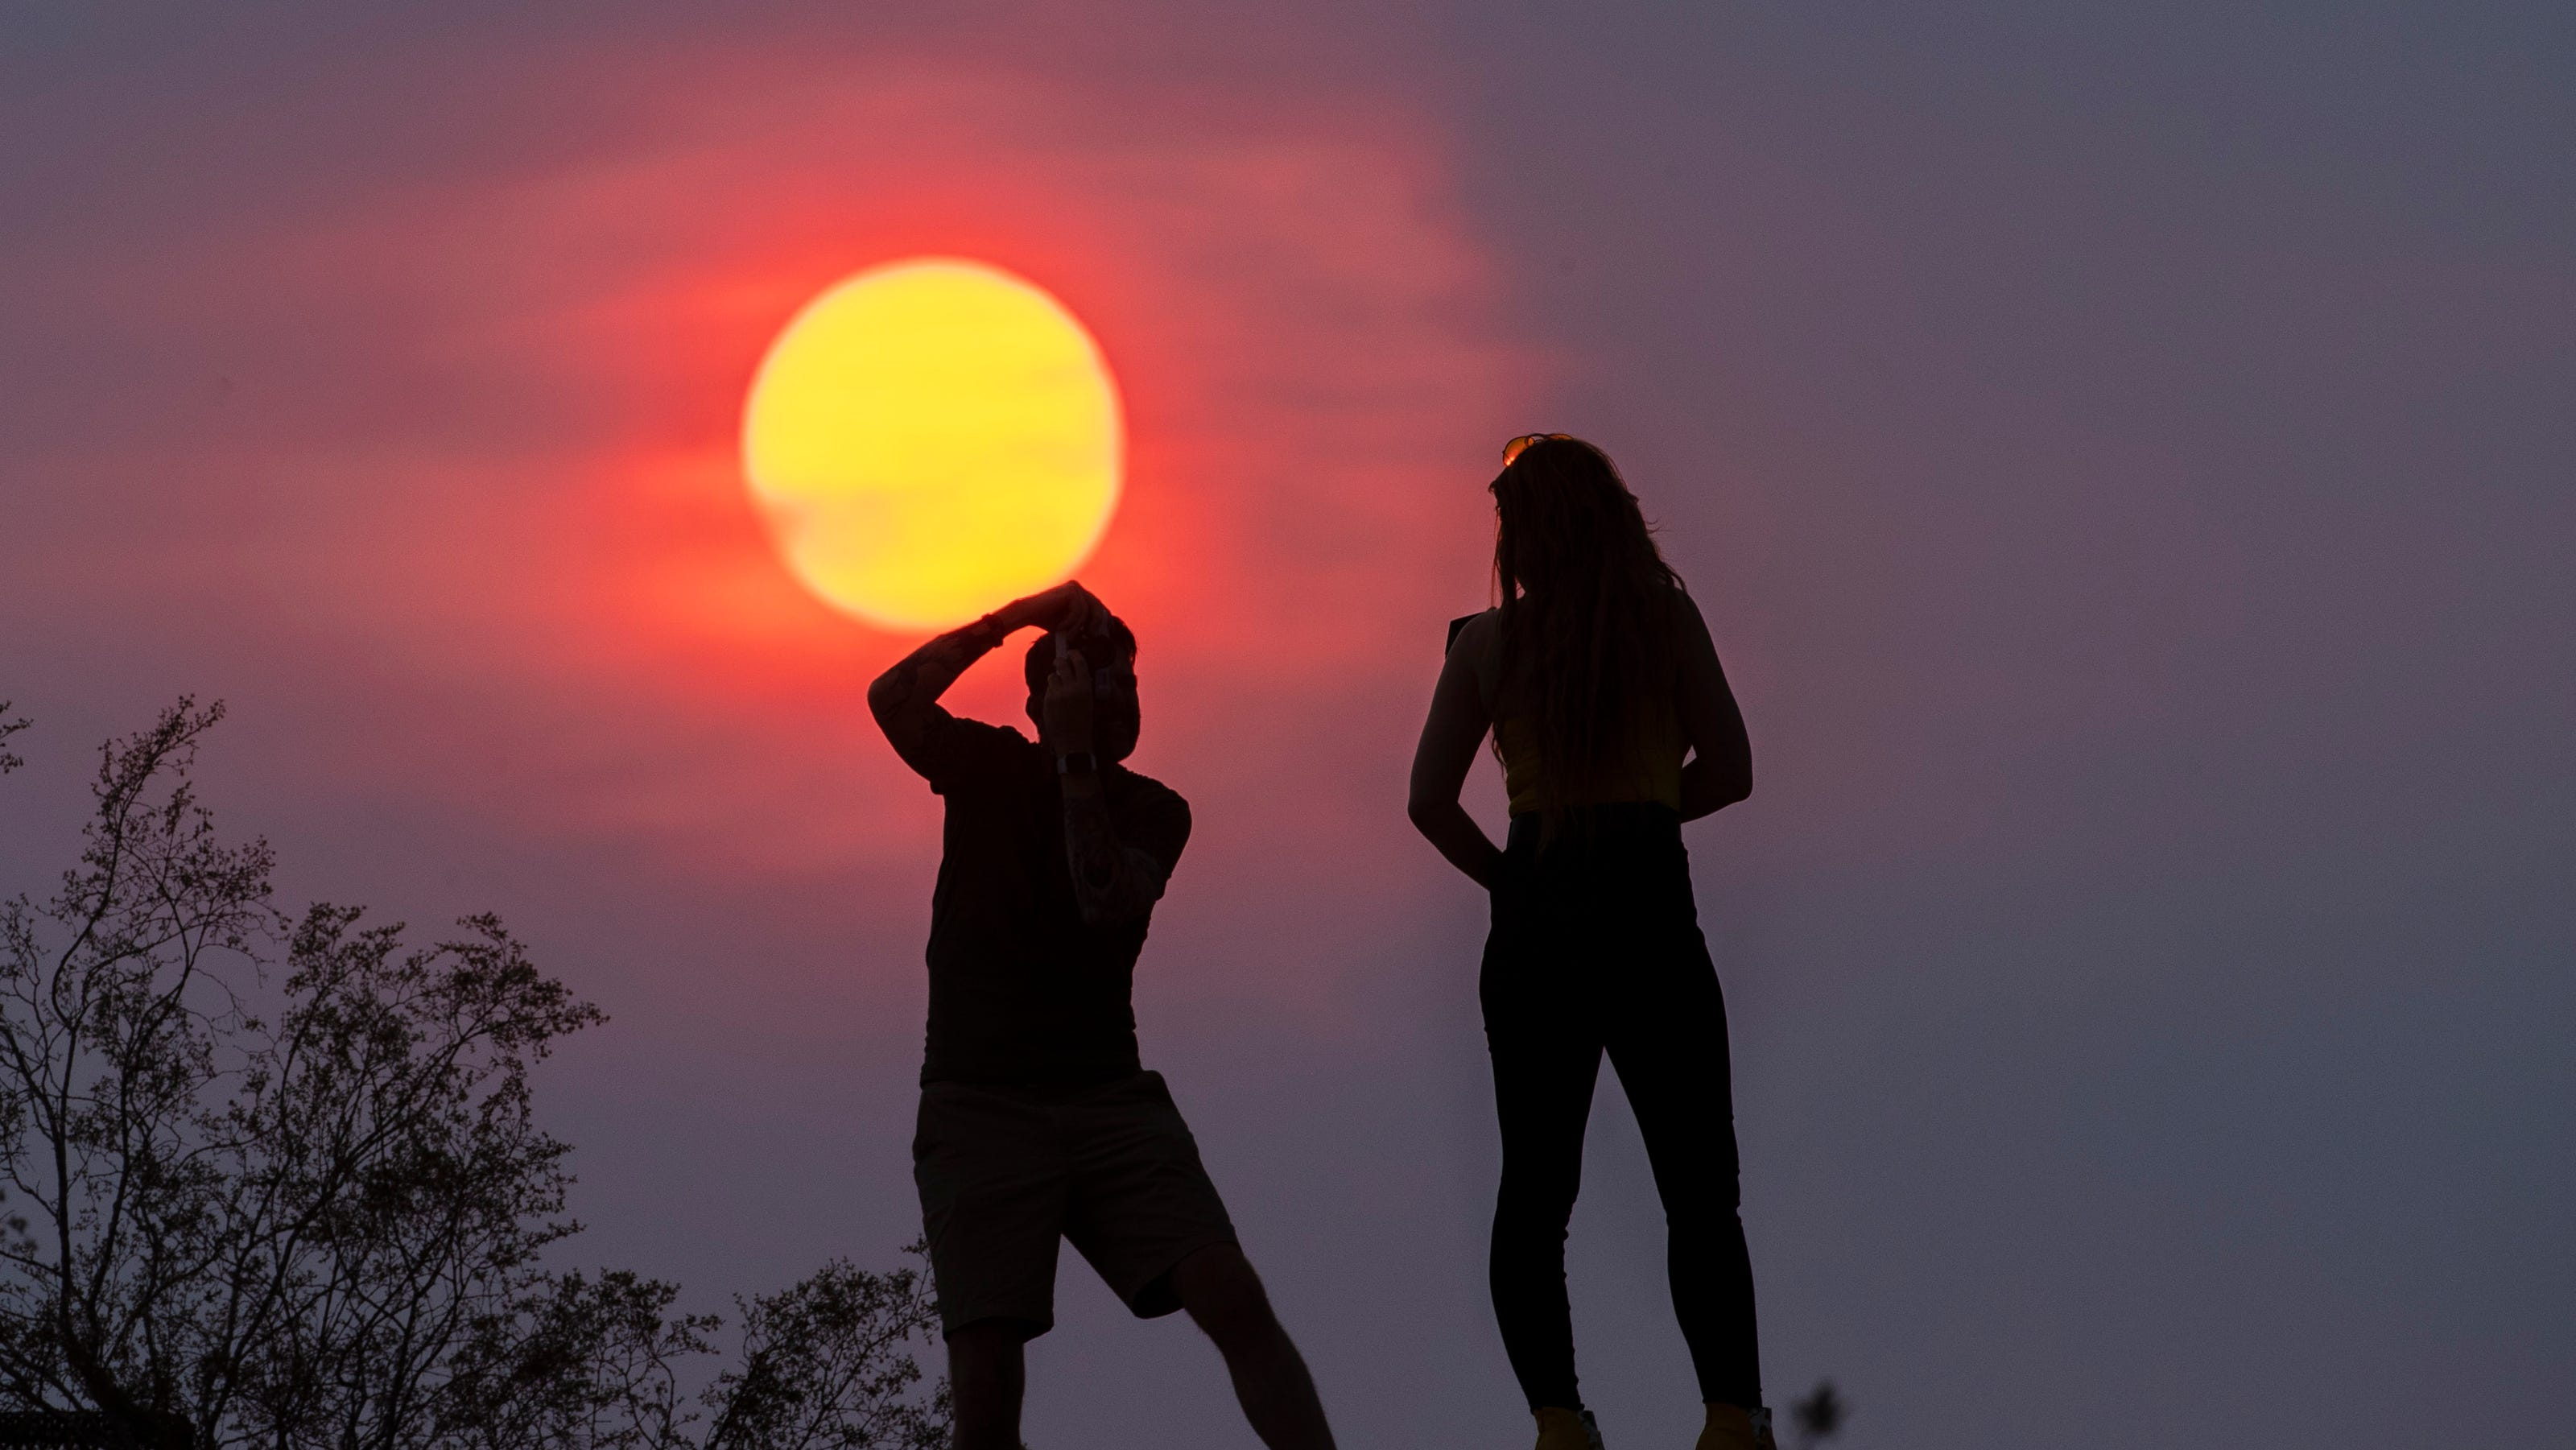 Phoenix reaches 115 degrees, sees storms that knock out power on Day 1 of monsoon season